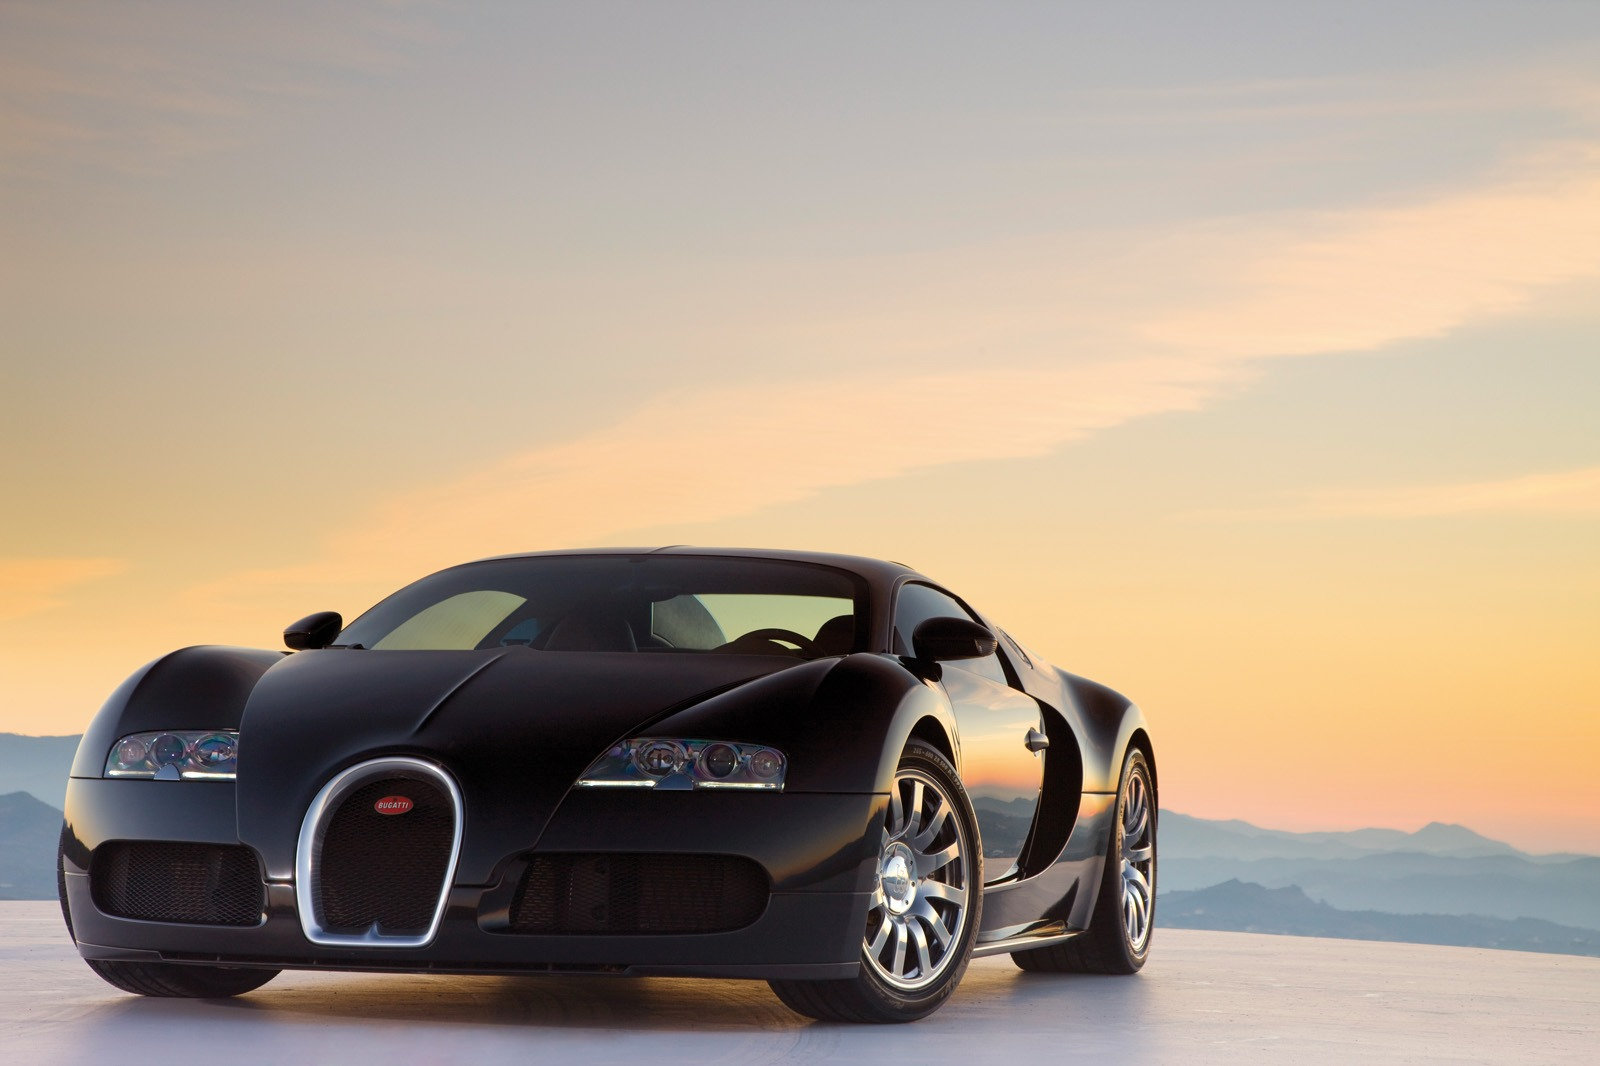 Bugatti Veyron photo 161014